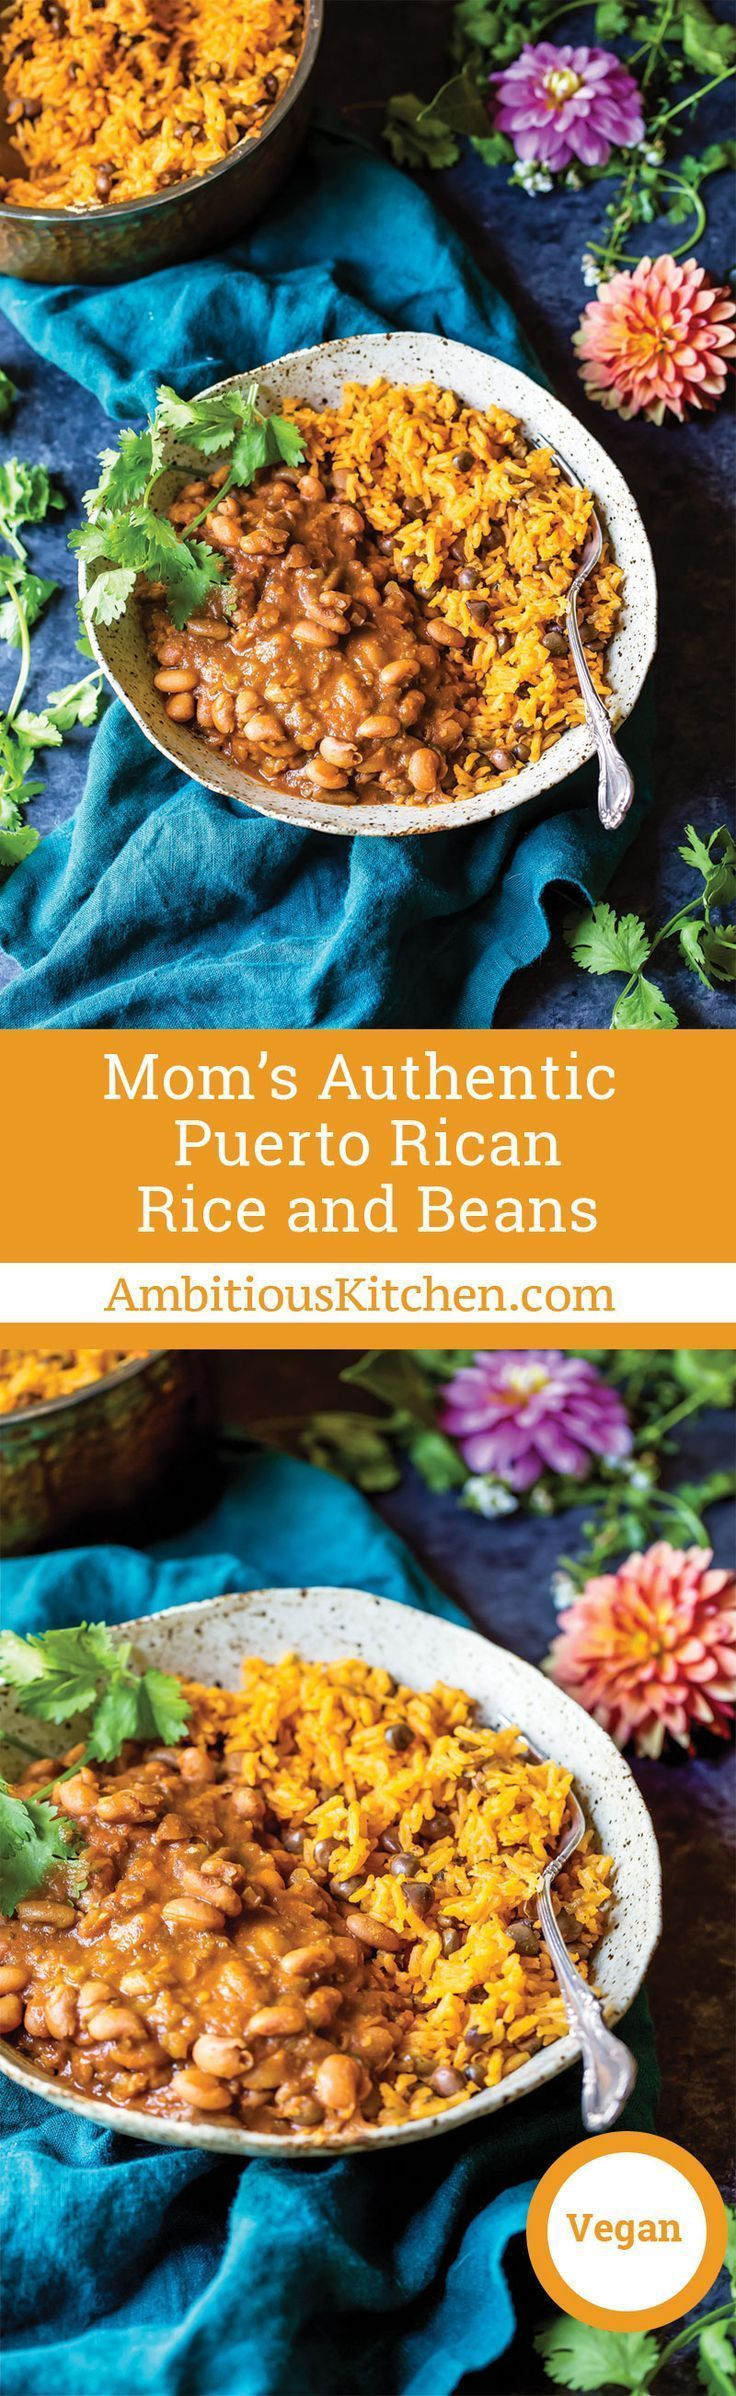 Mom�s authentic Puerto Rican Rice and Beans with savory homemade sofrito and sazon! You�ll love this incredibly flavorful, comforting homemade meal that will fill your home with unbelievably delicious smells. The perfect recipe to serve a crowd or just sa